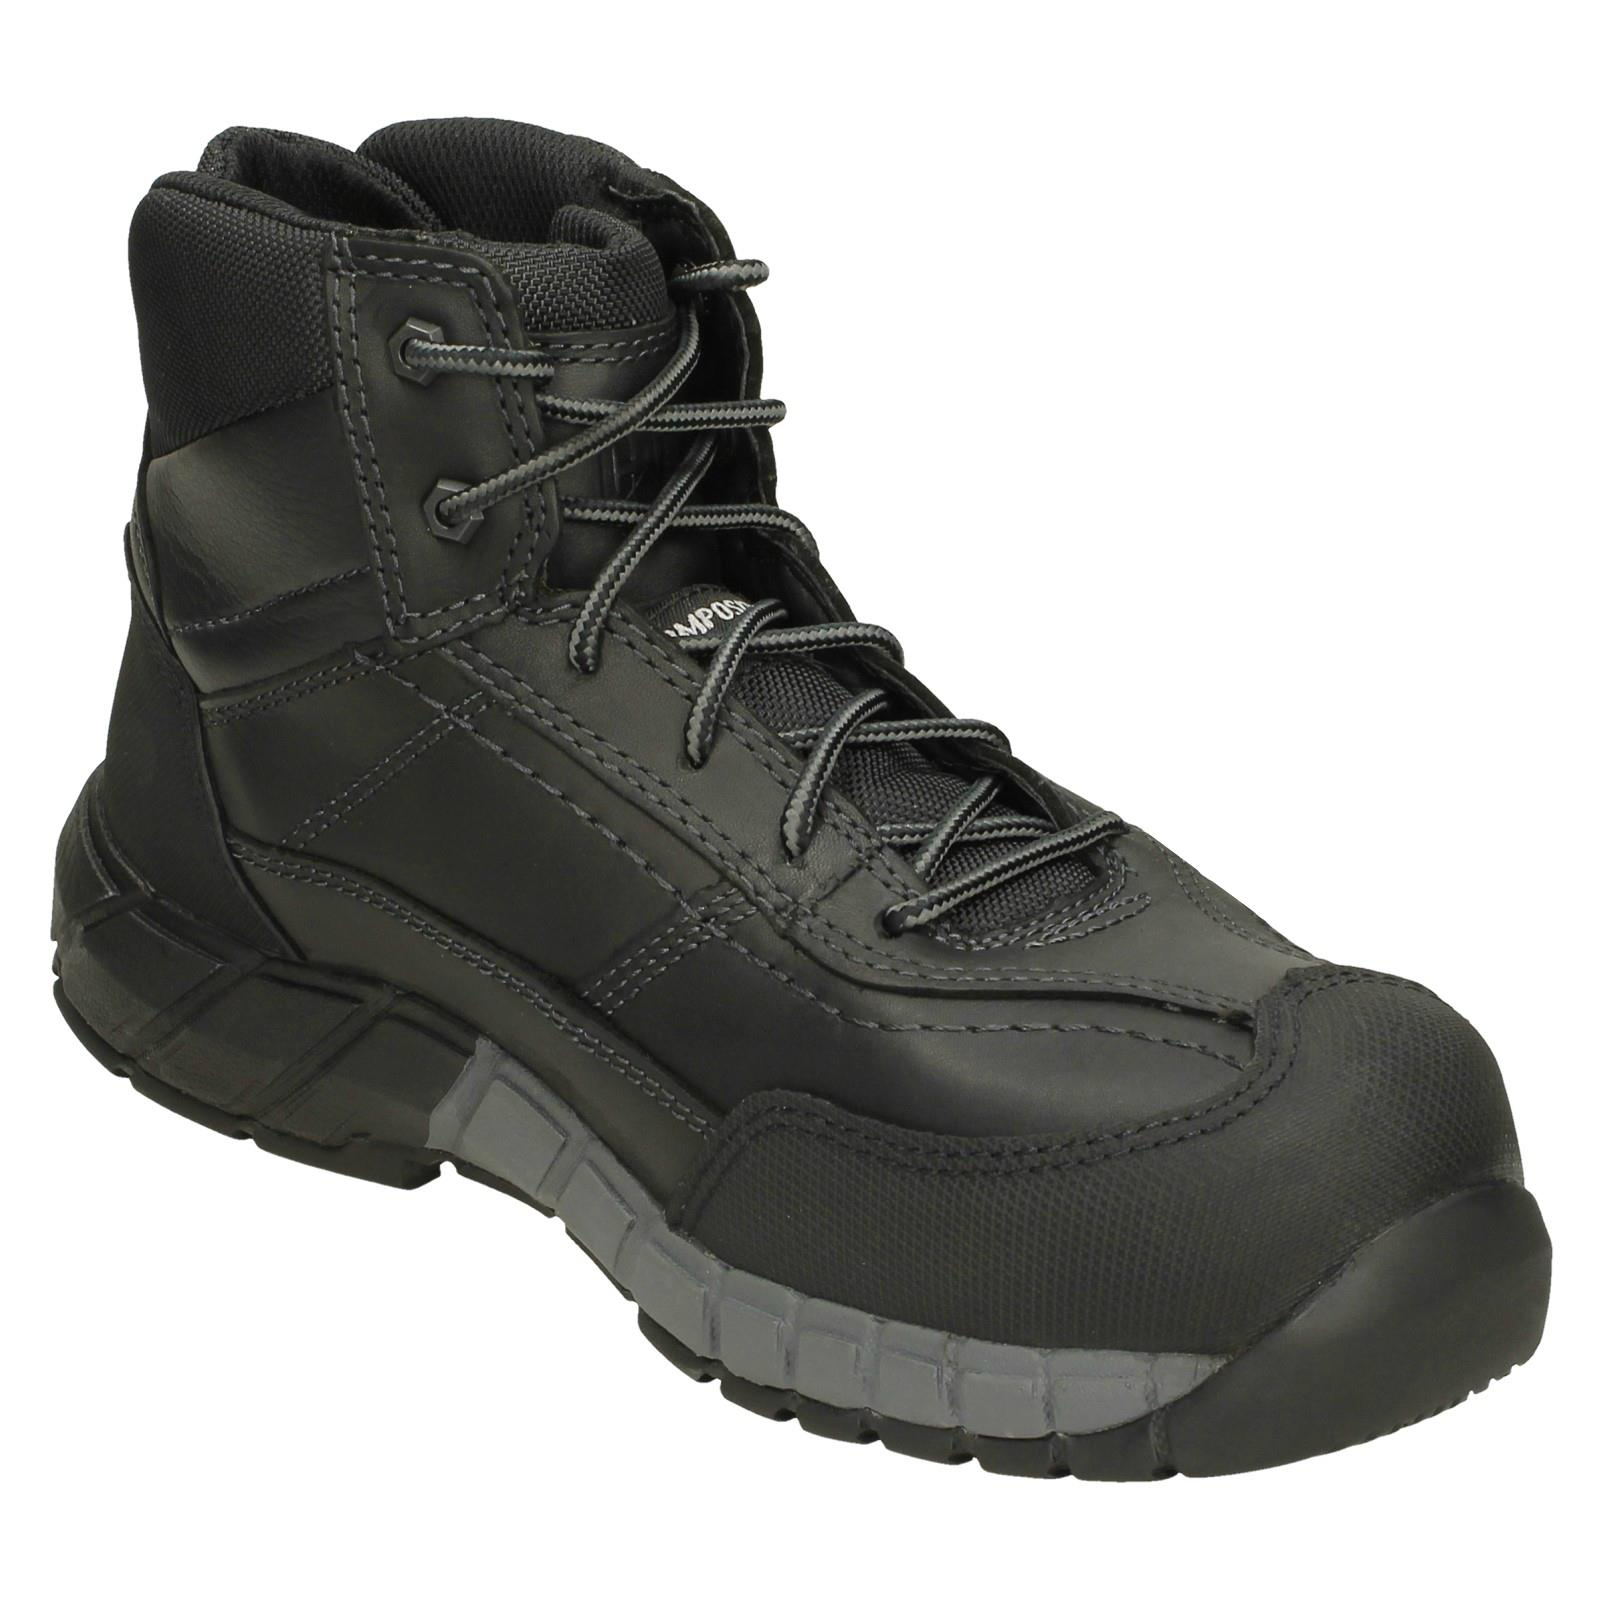 Mens Caterpillar Composite Toe Safety Boots /'Streamline MD L CT/'